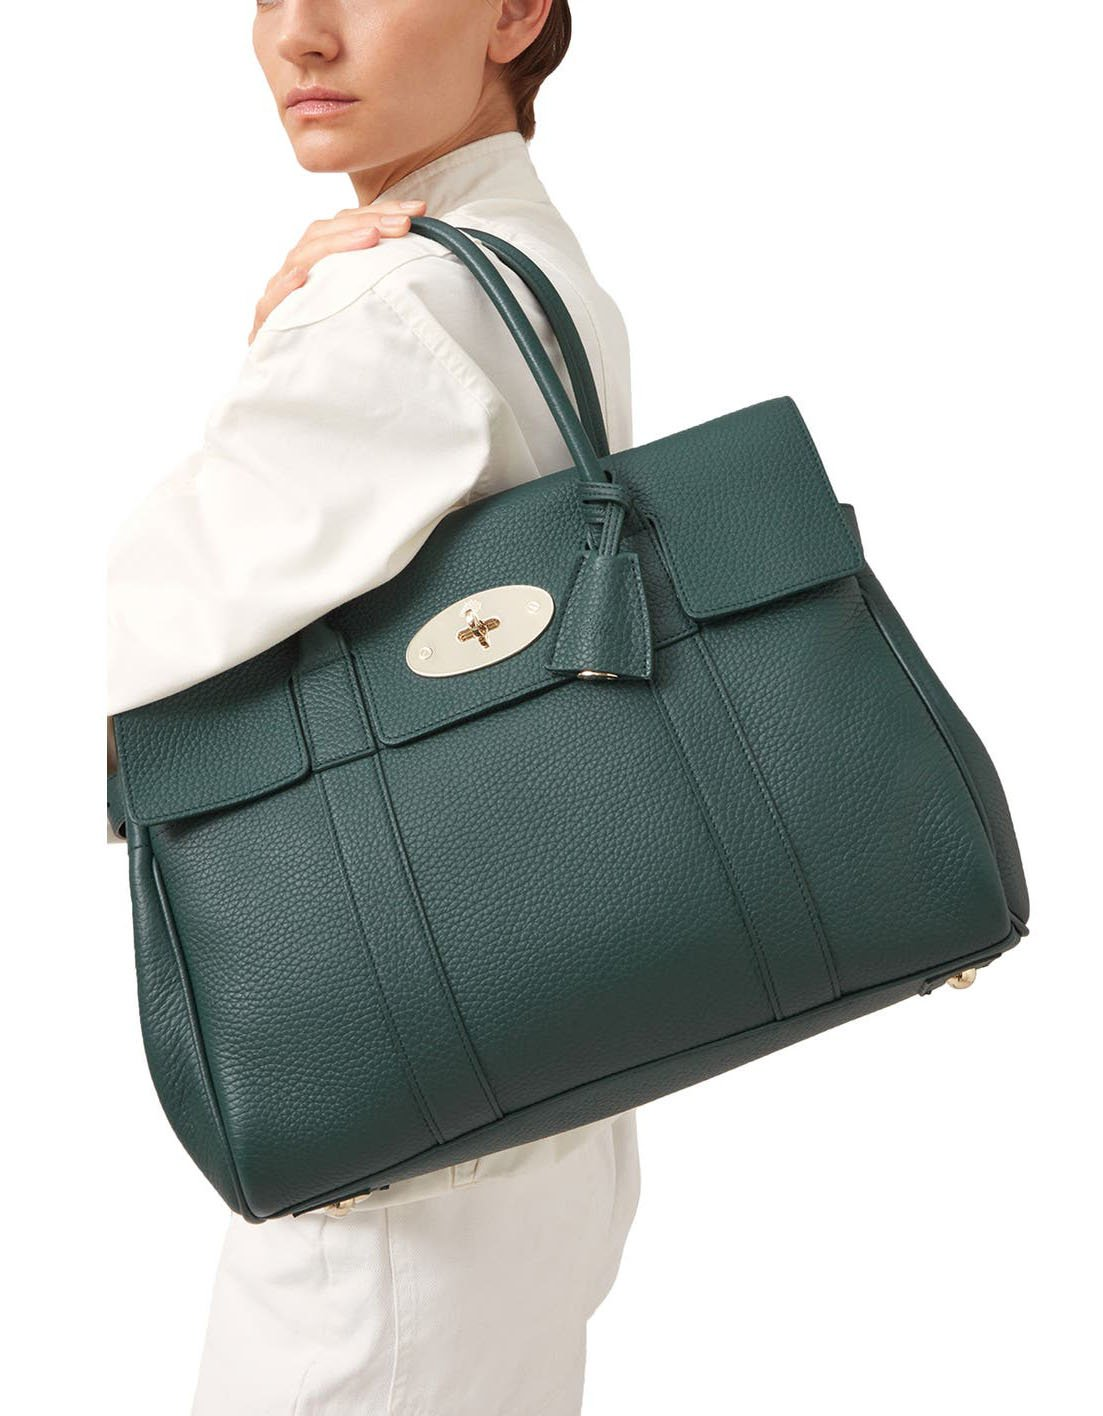 The Bayswater is a favorite among working women for its size and classic look